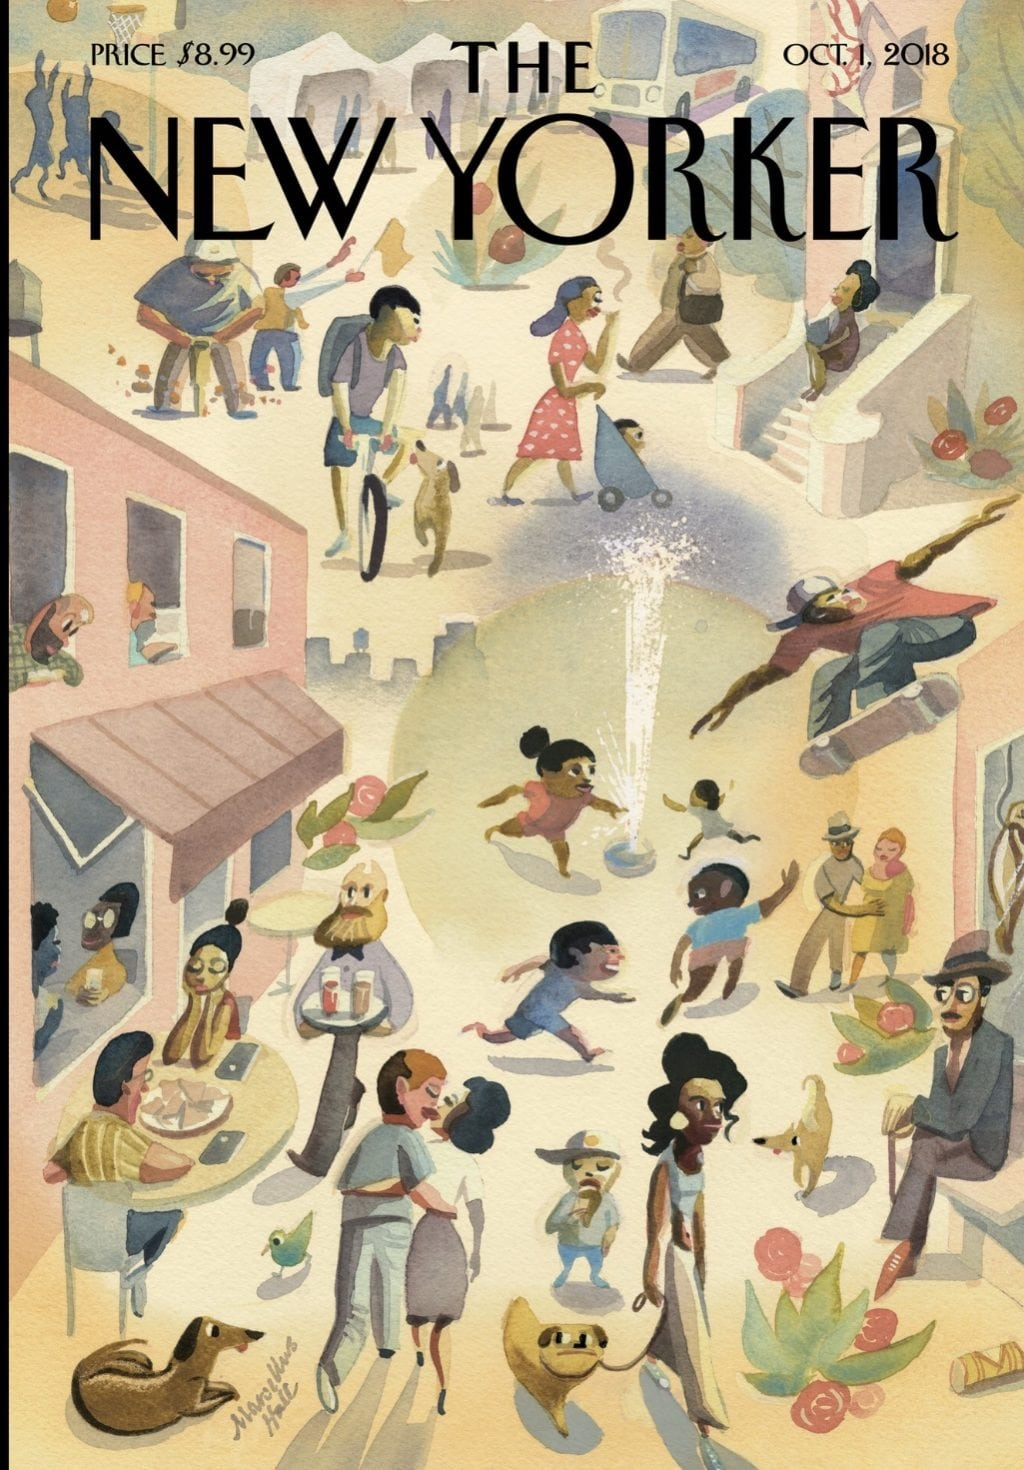 Cover Designers For New Yorker